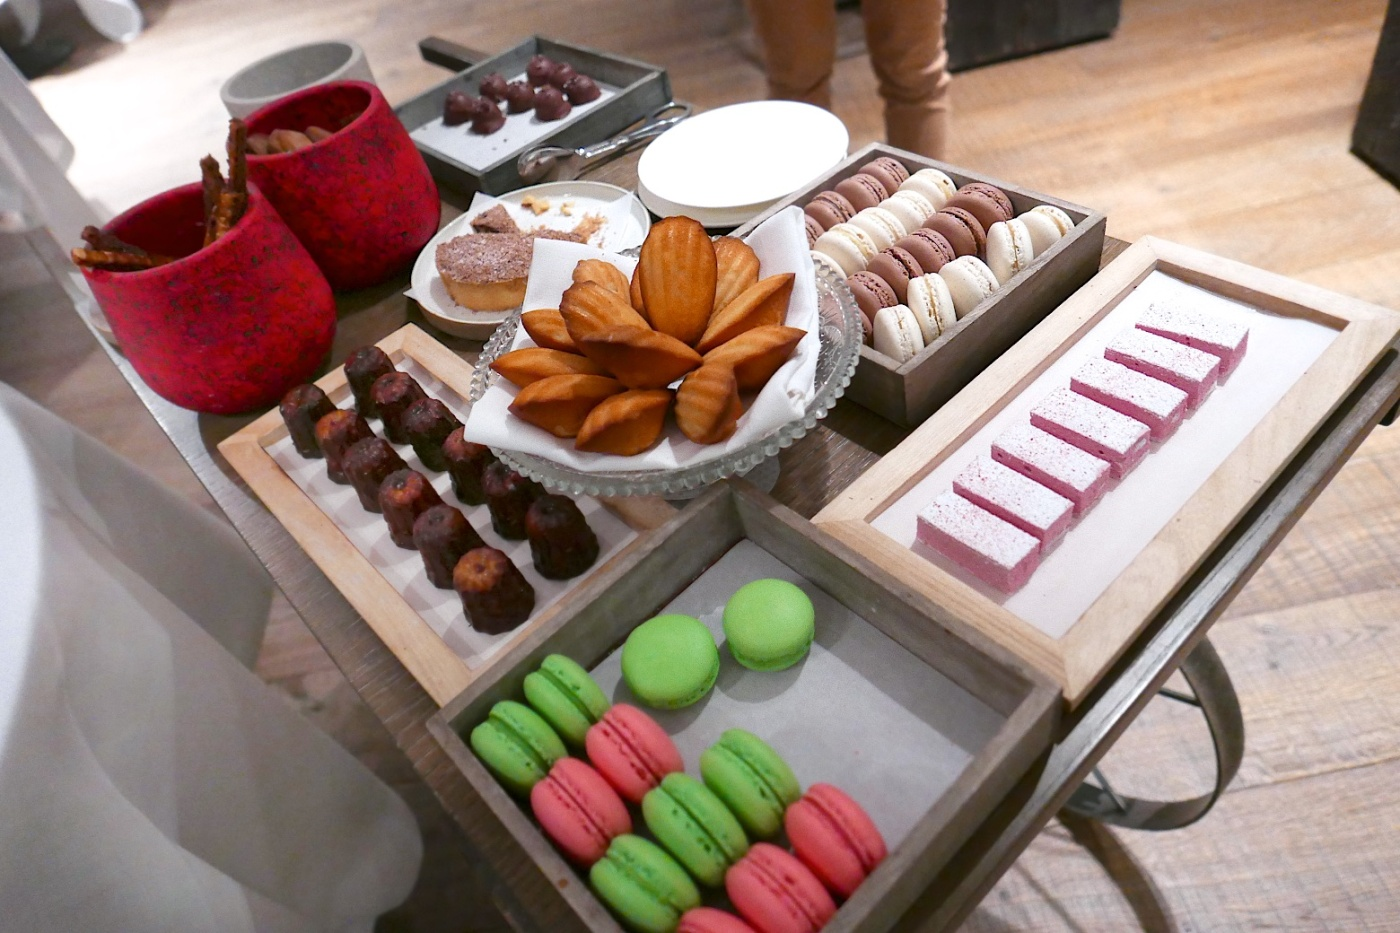 Cinnamon sticks, caneles, speculoos, madeleines, macarons, marshmallow